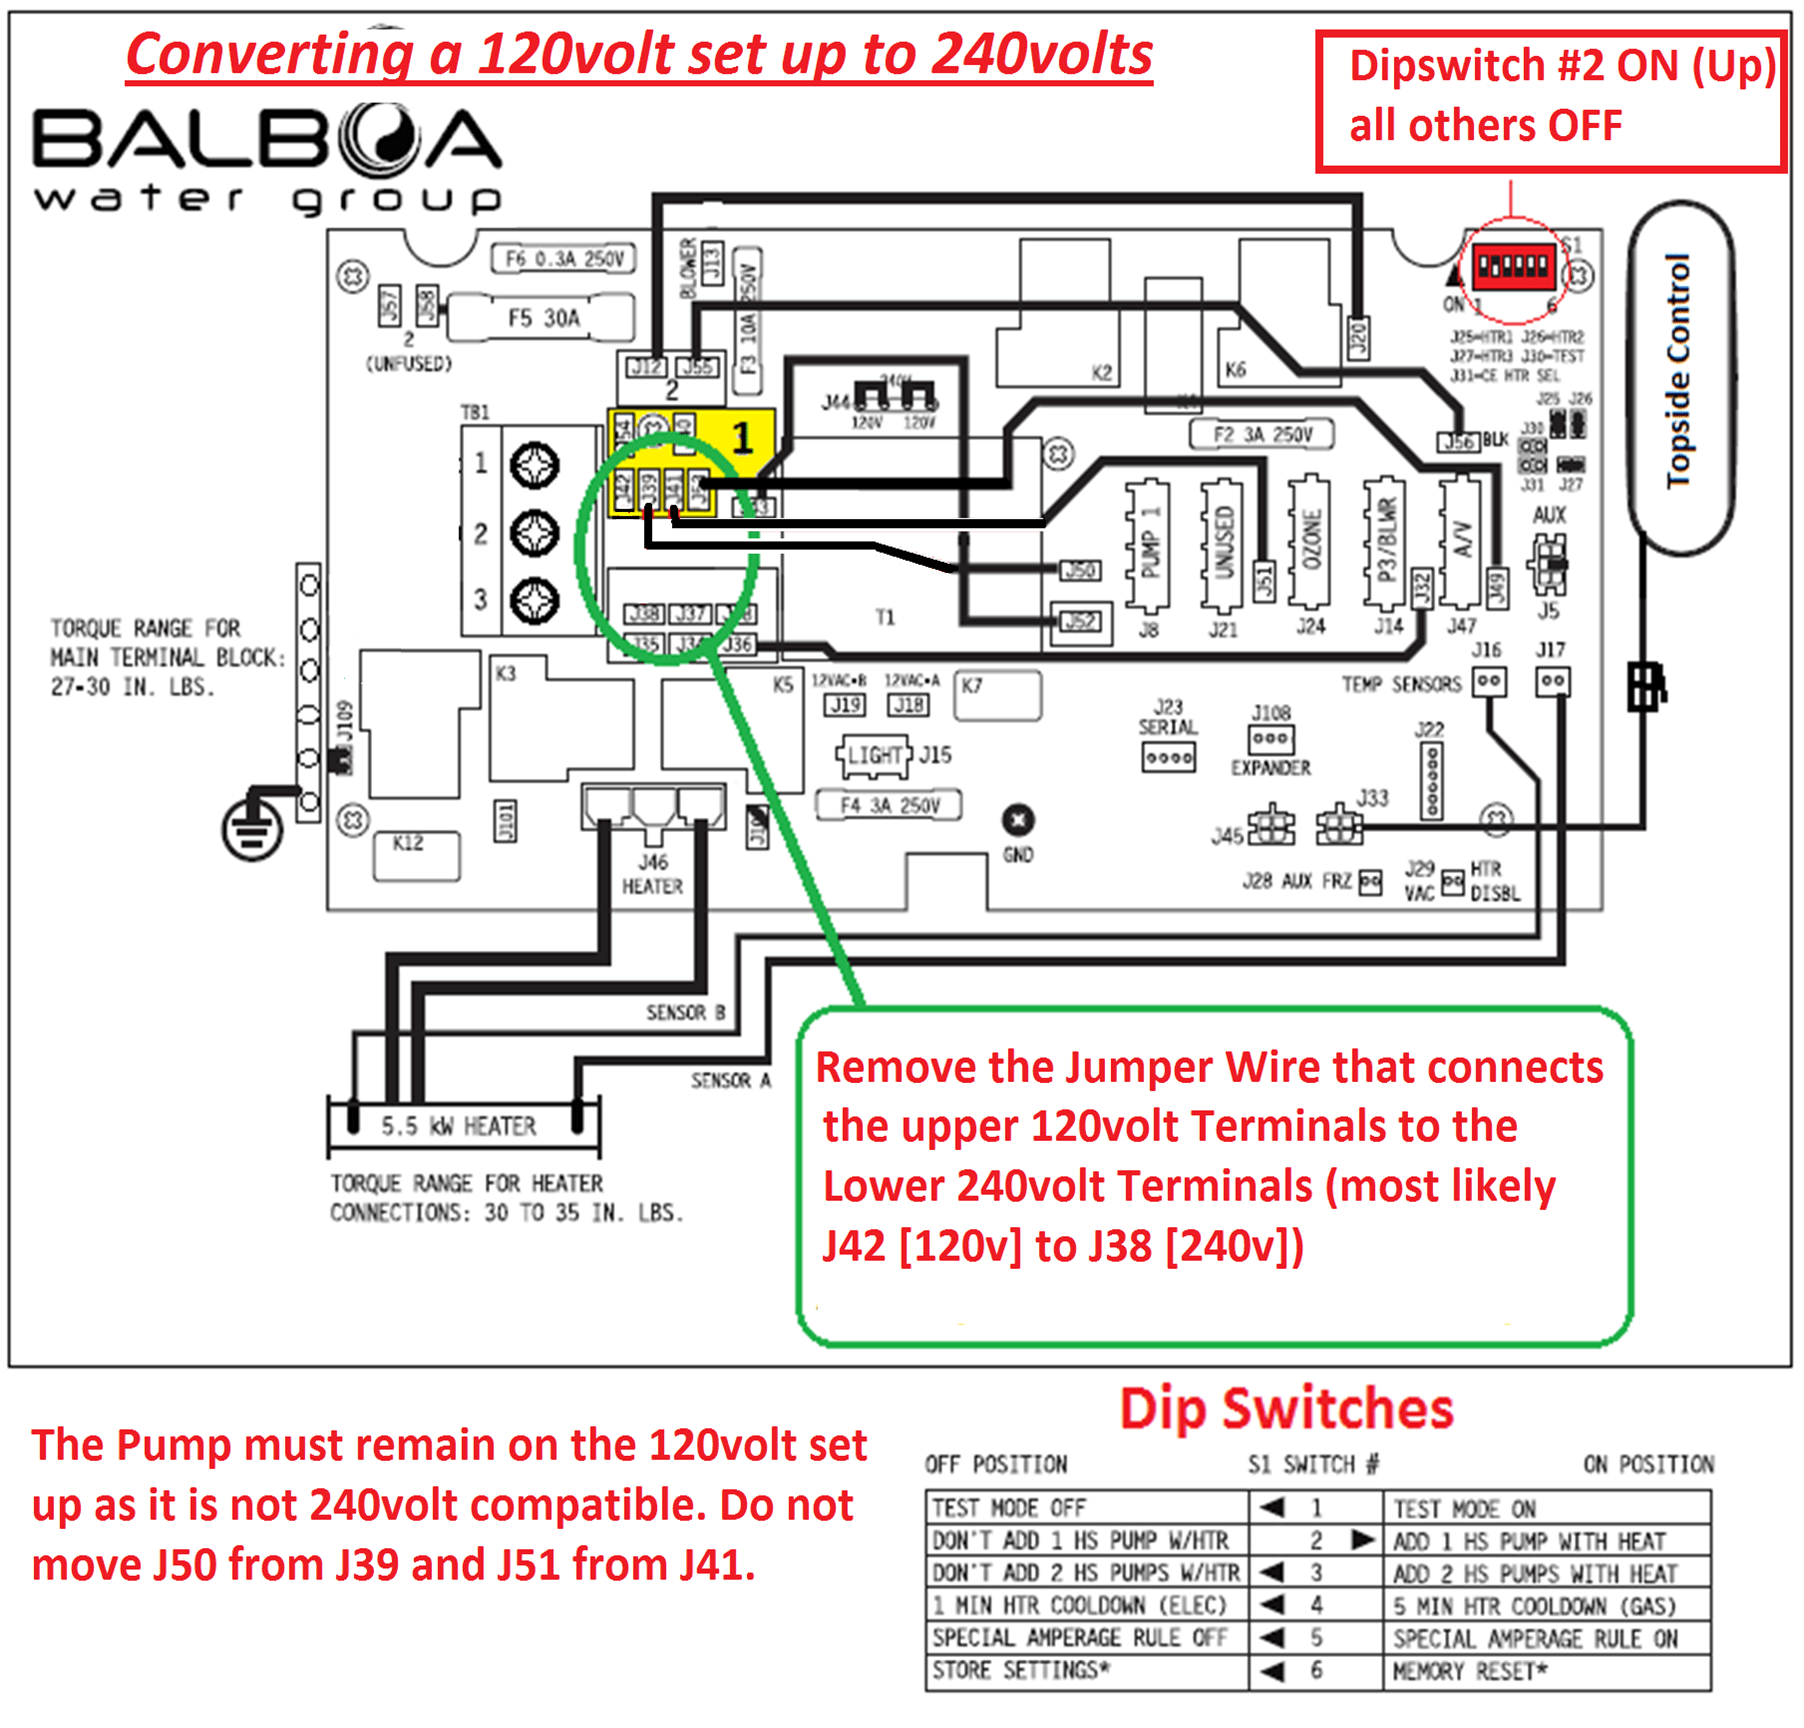 hight resolution of electrical installation converting a 120v balboa bp to 240v